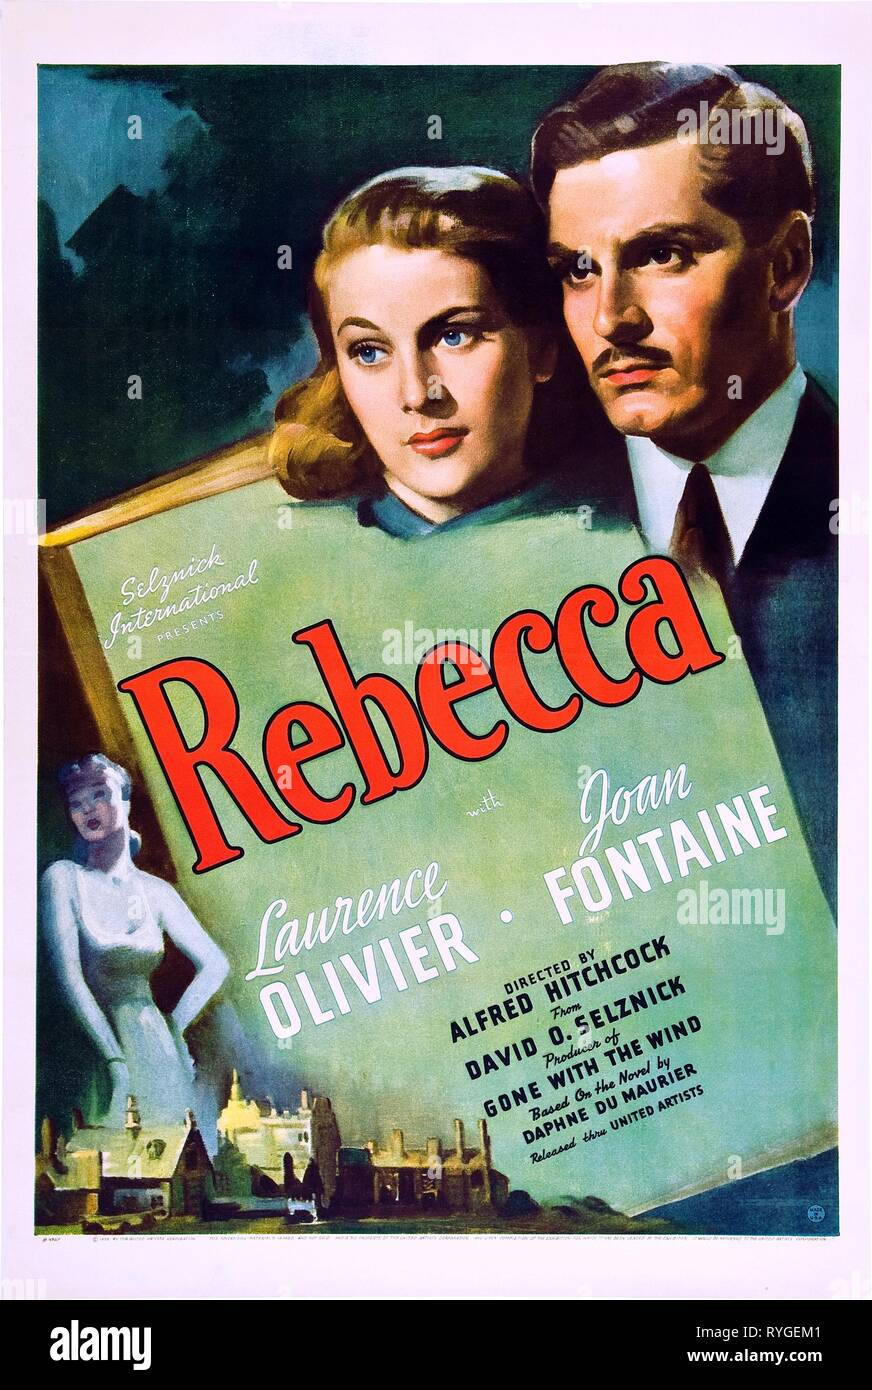 JOAN FONTAINE, LAURENCE OLIVIER POSTER, REBECCA, 1940 - Stock Image